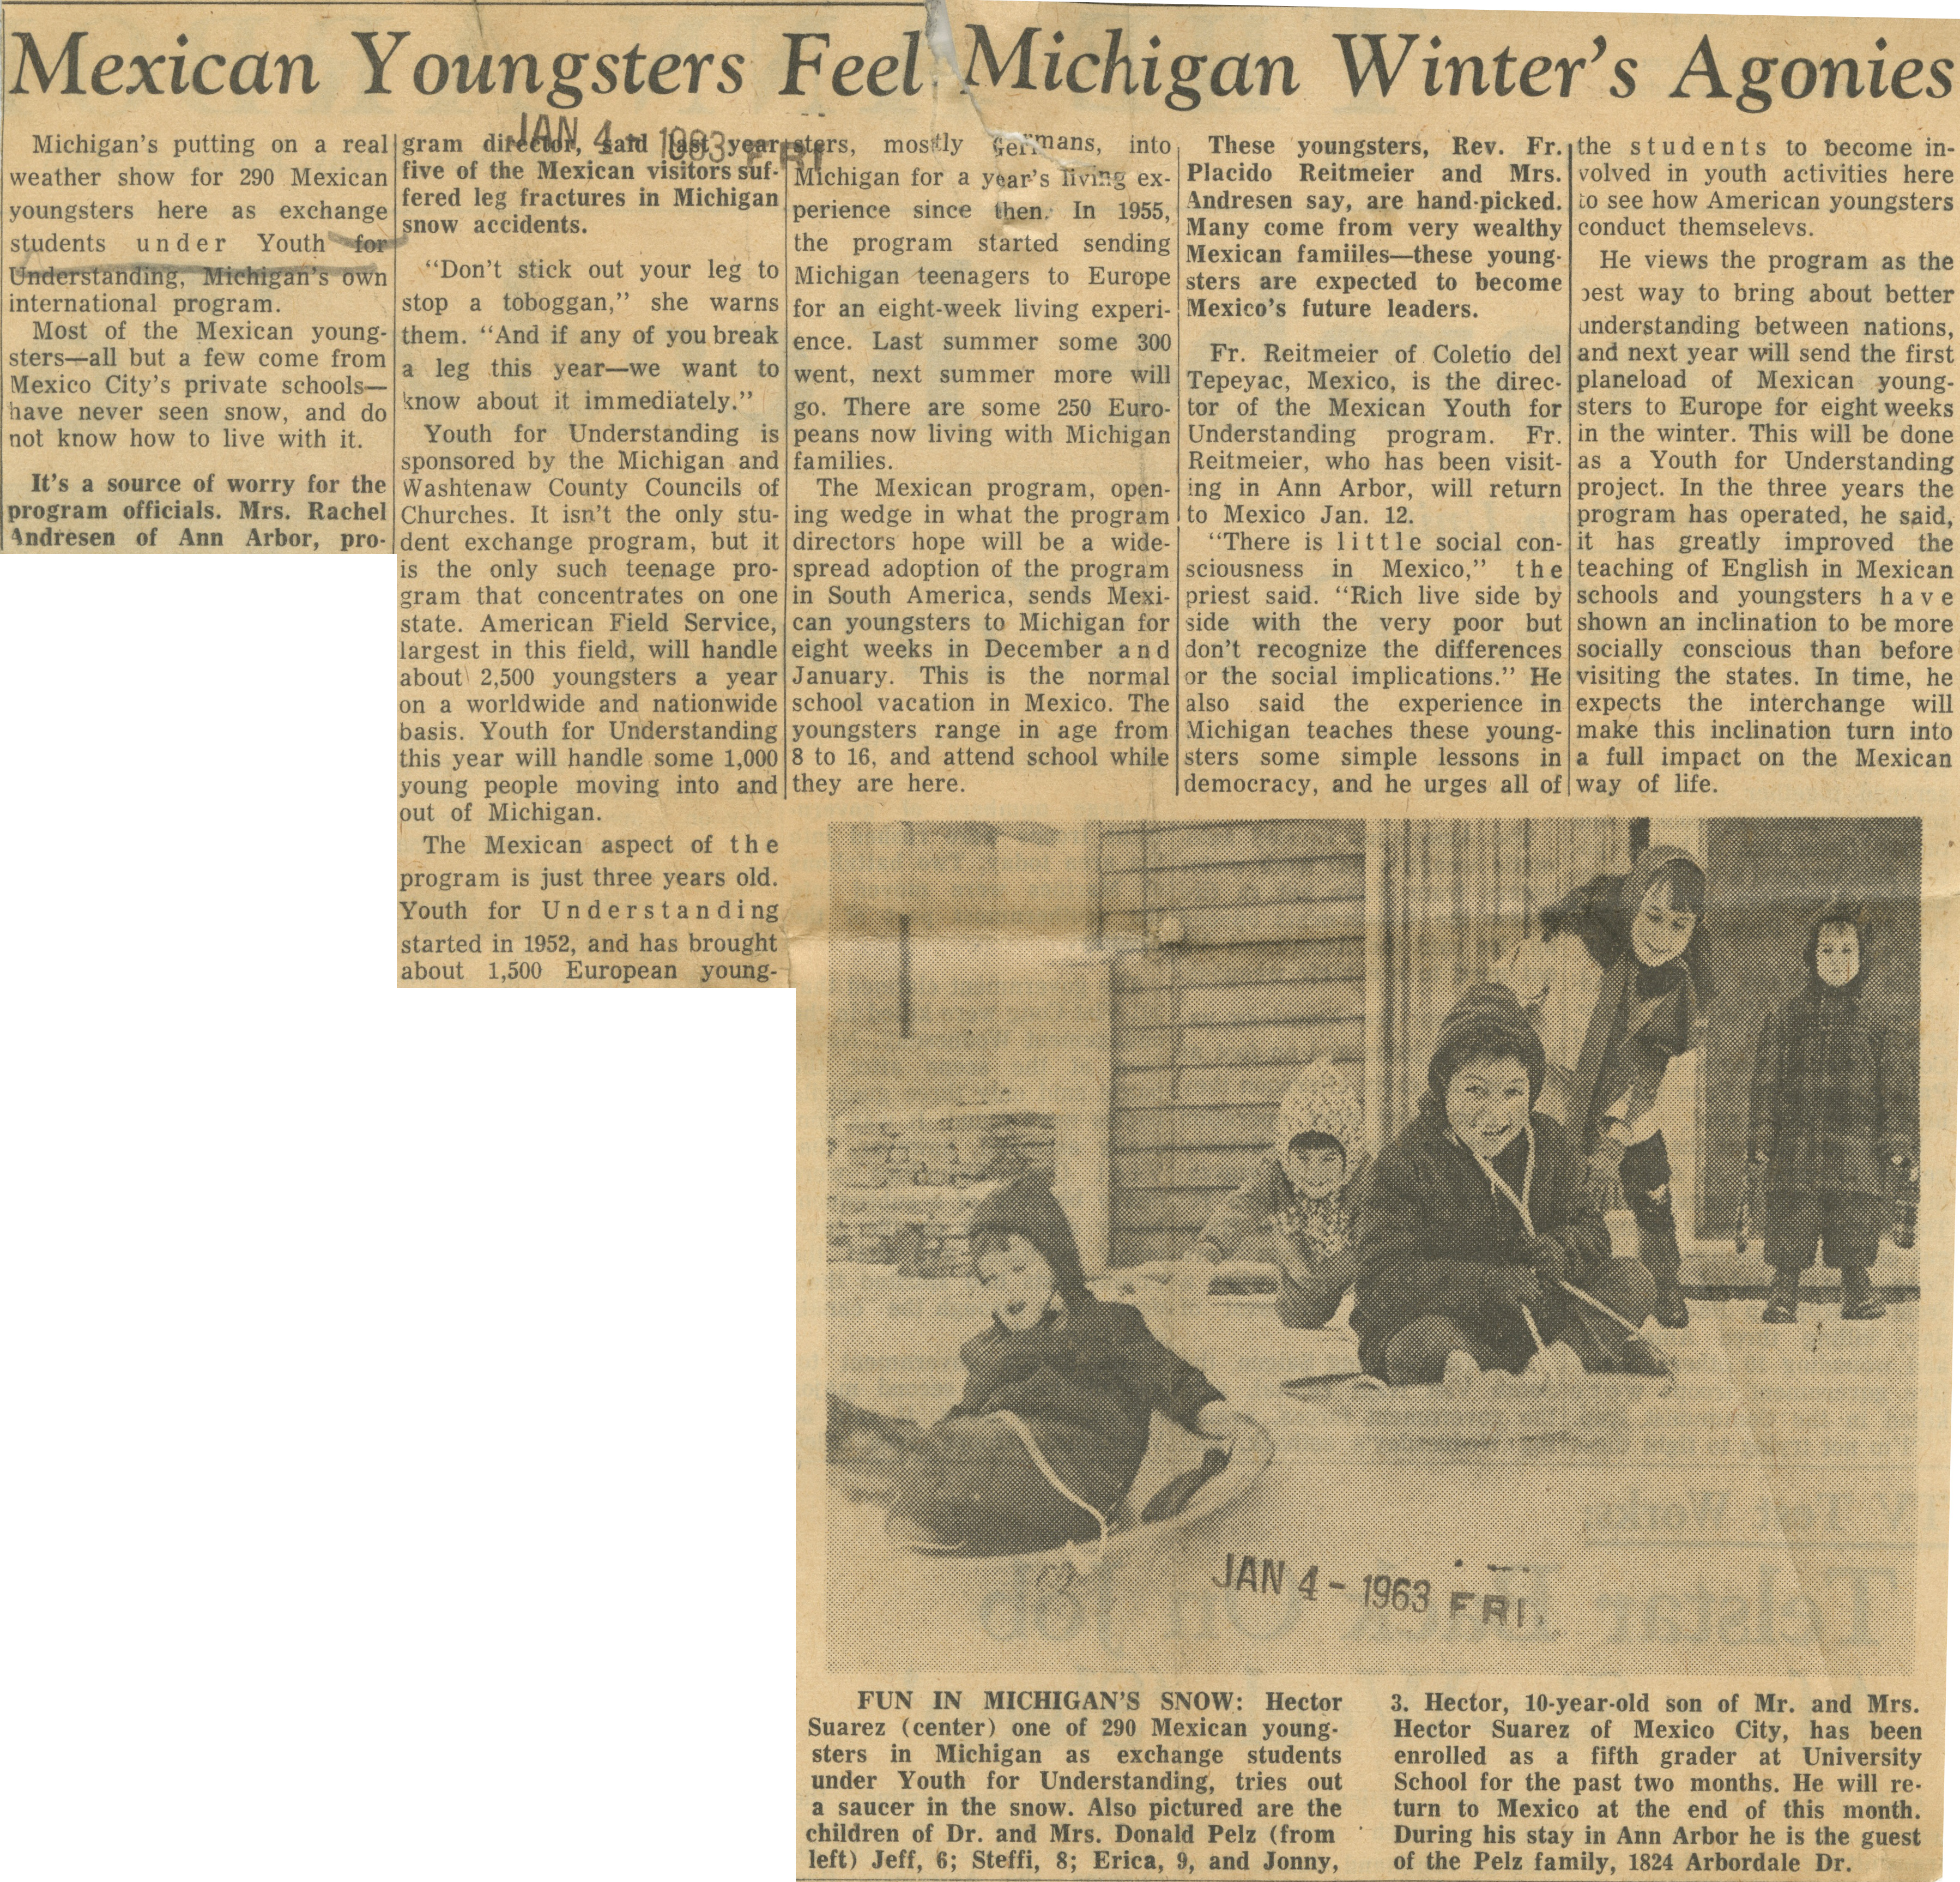 Mexican Youngsters Feel Michigan Winter's Agonies image